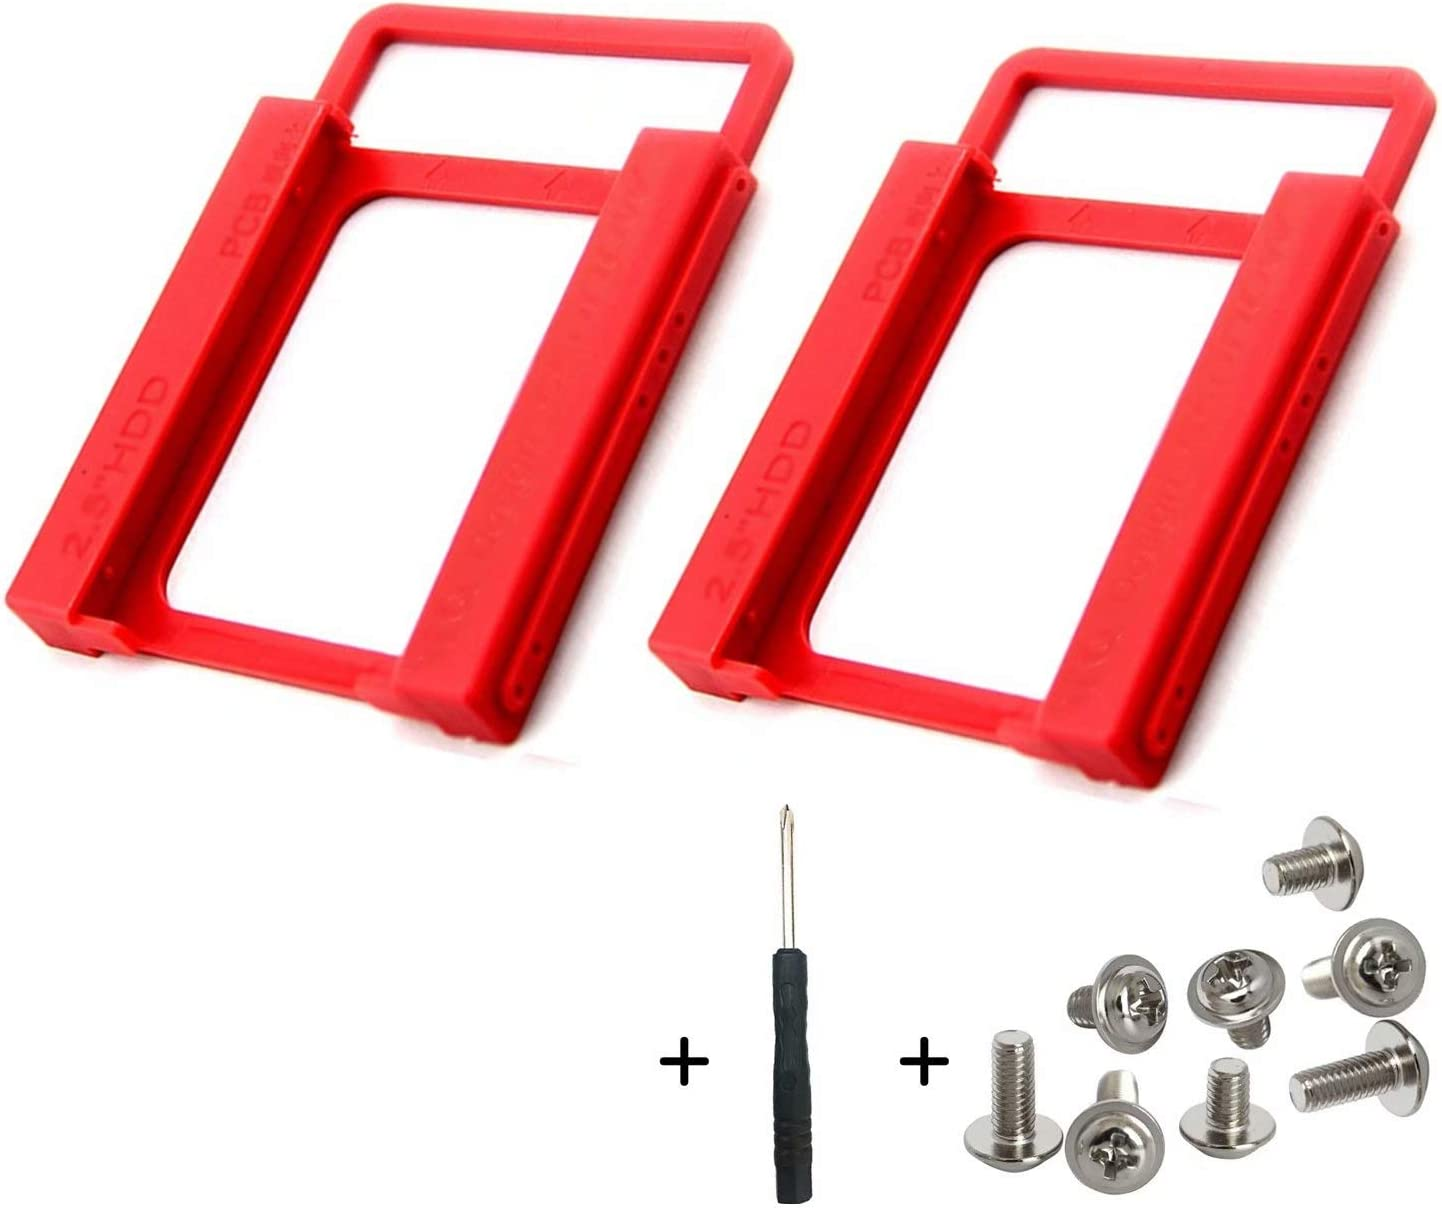 """ANZKA 2 Pcs SSD/HDD Mounting Bracket 2.5"""" to 3.5"""" Adapter Shockproof Plastic Holder 2.5 to 3.5 Converts Hard Drive Bay Notebook to Desktop for PC, with 8 Fixing Screws and 1 Screwdriver (Red)"""